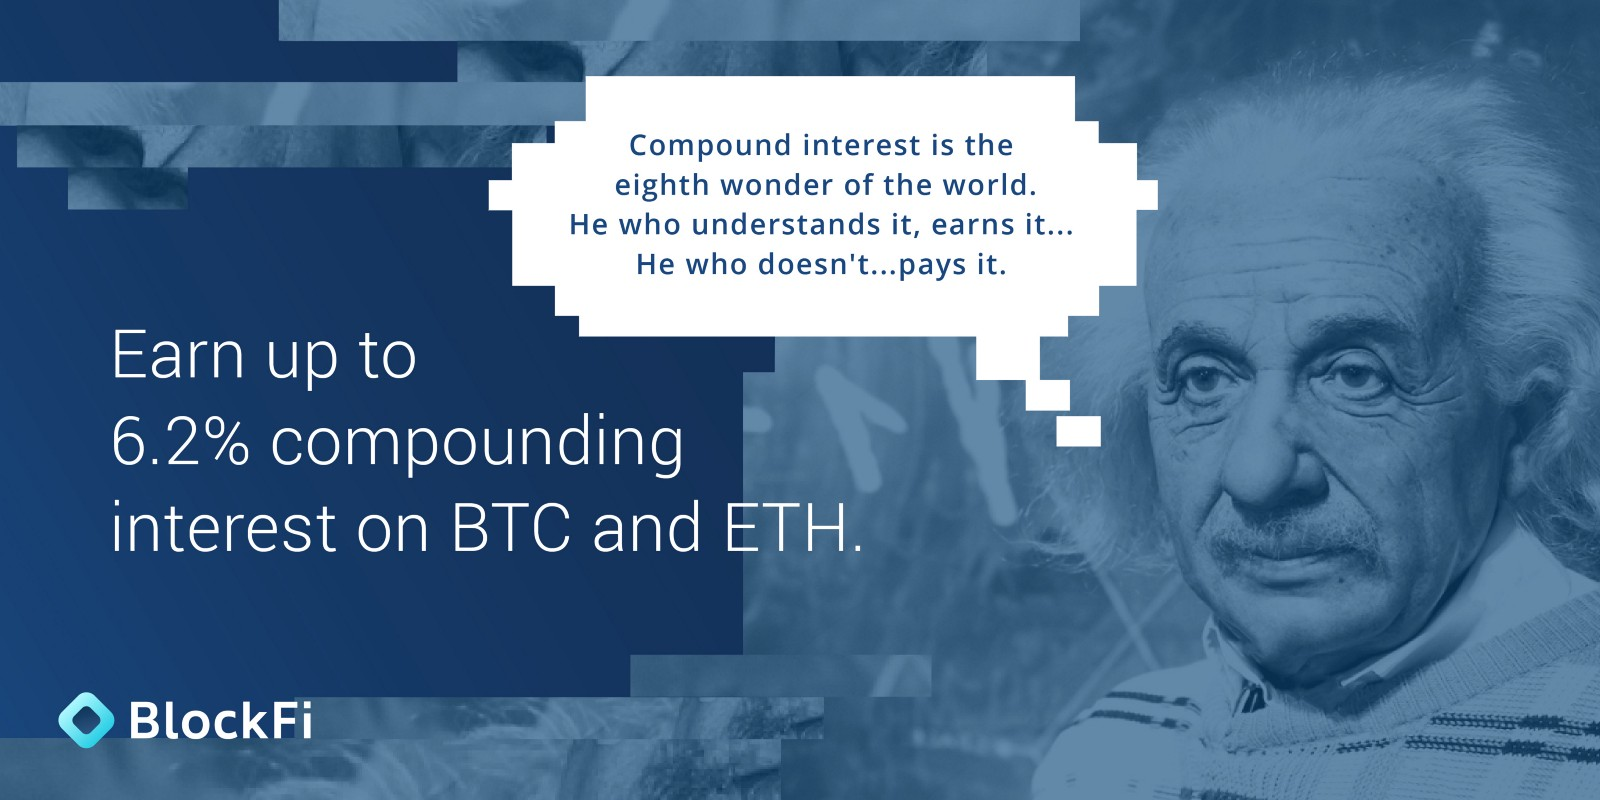 /how-to-hodl-crypto-and-earn-compound-interest-fea61a46f4cb feature image